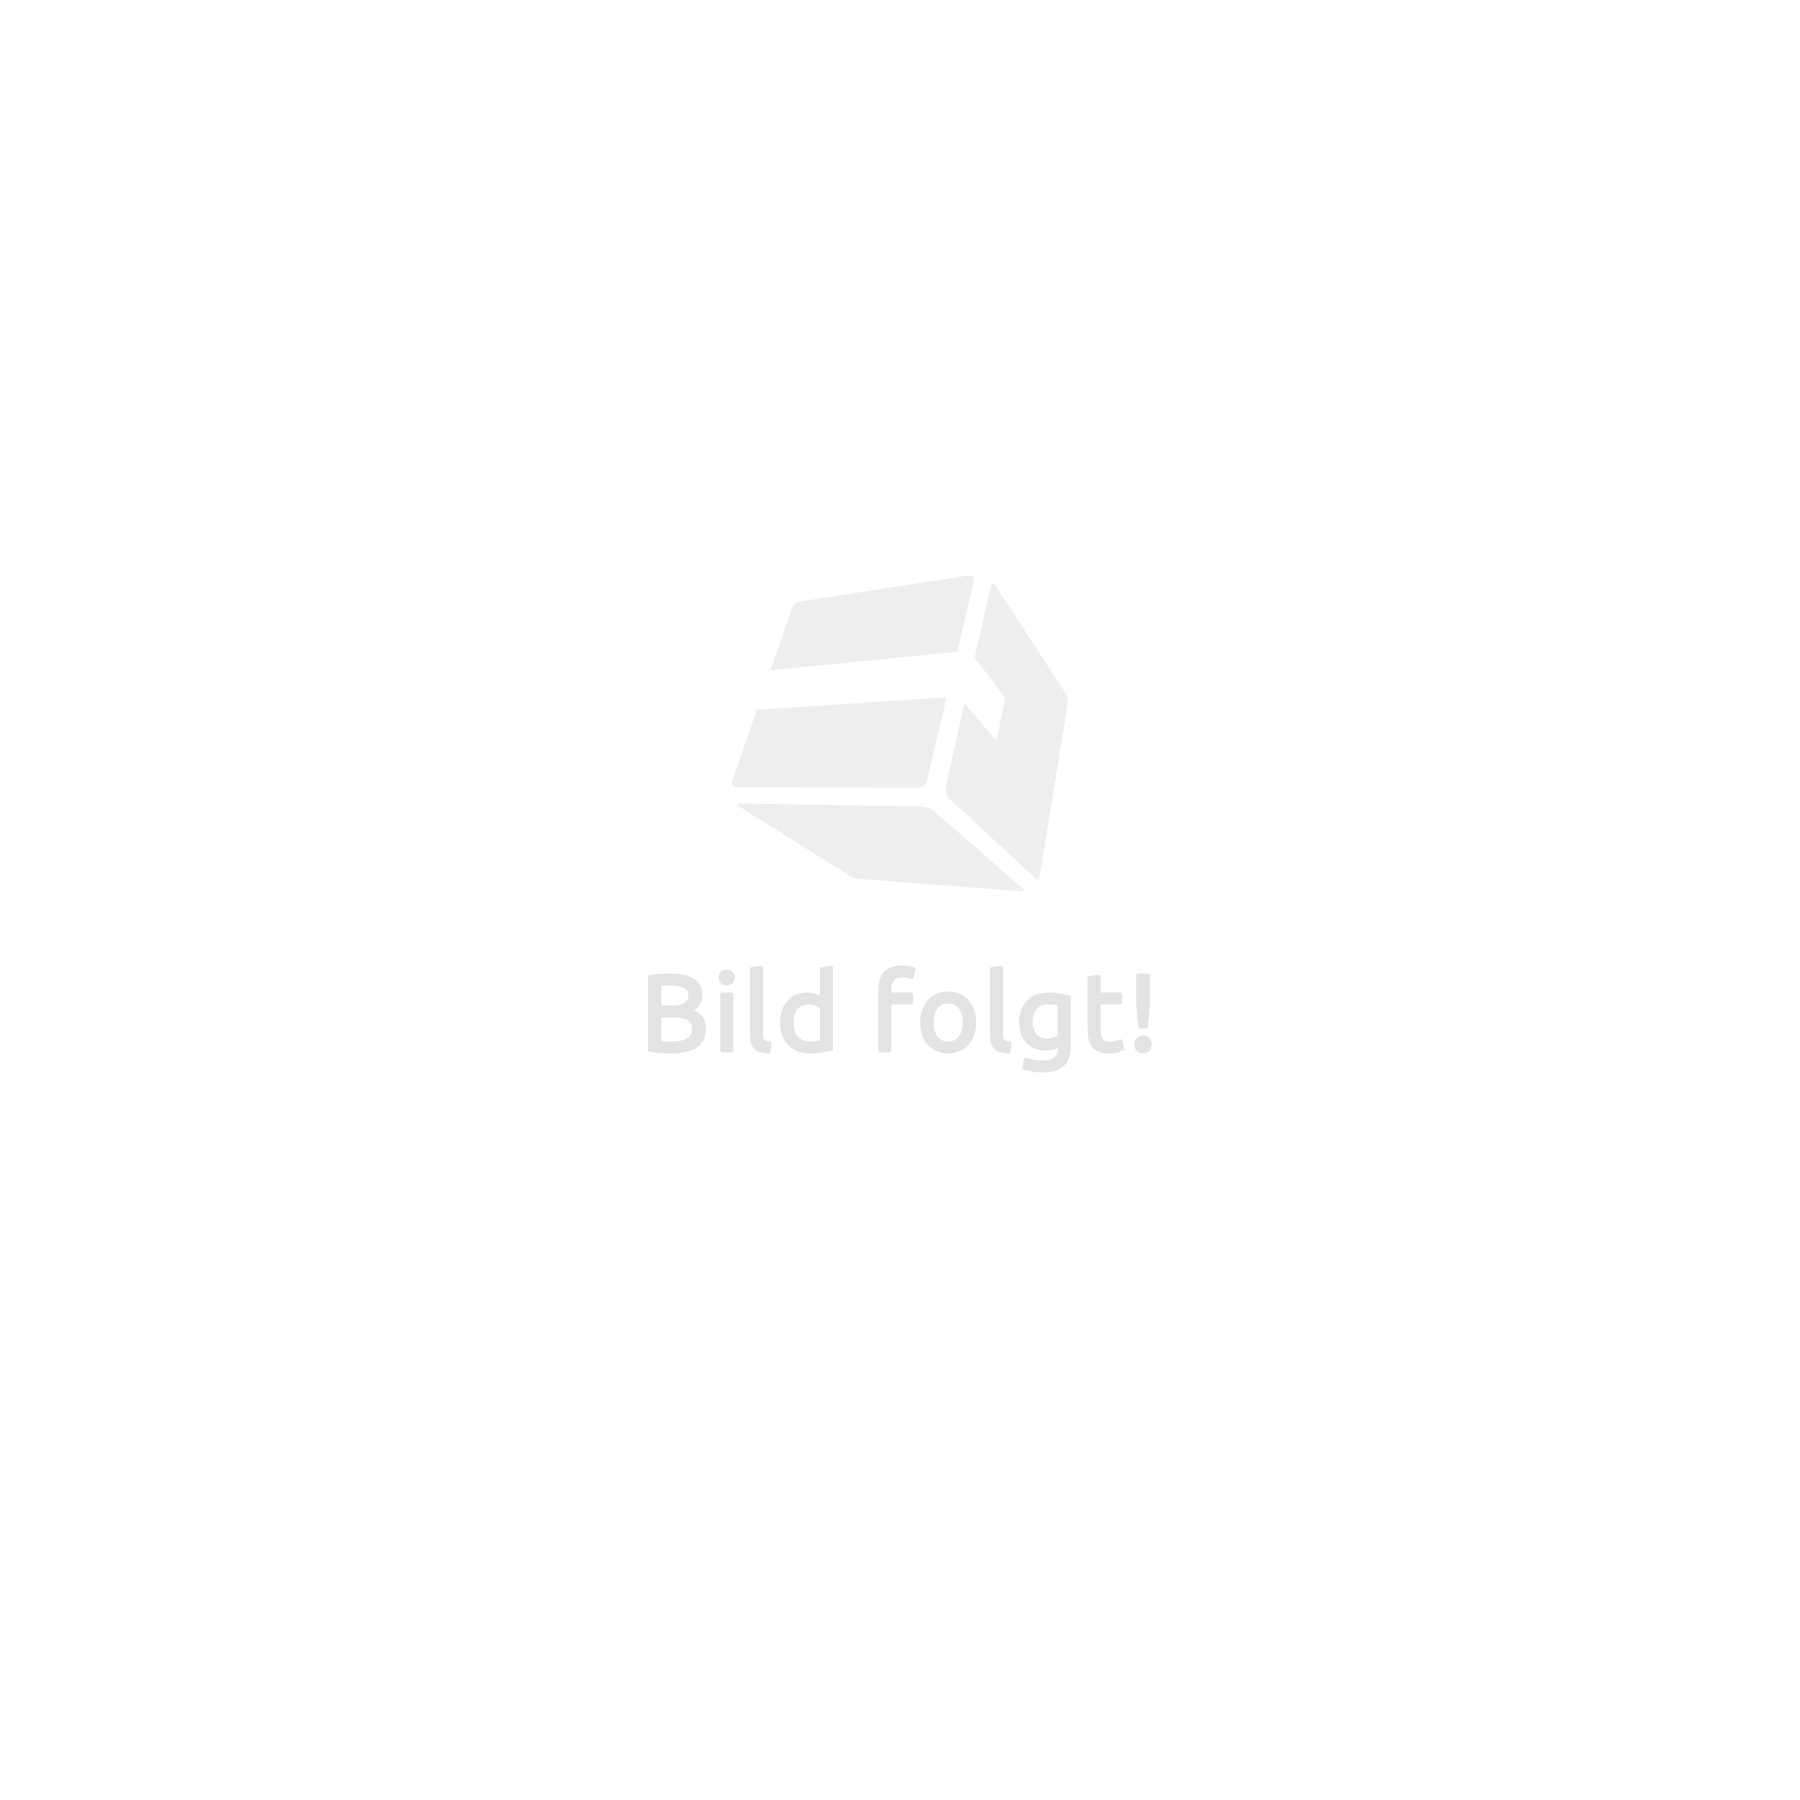 tv wandhalterung lcd led fernseher wandhalter schwenkbar 32 60 zoll b ware ebay. Black Bedroom Furniture Sets. Home Design Ideas